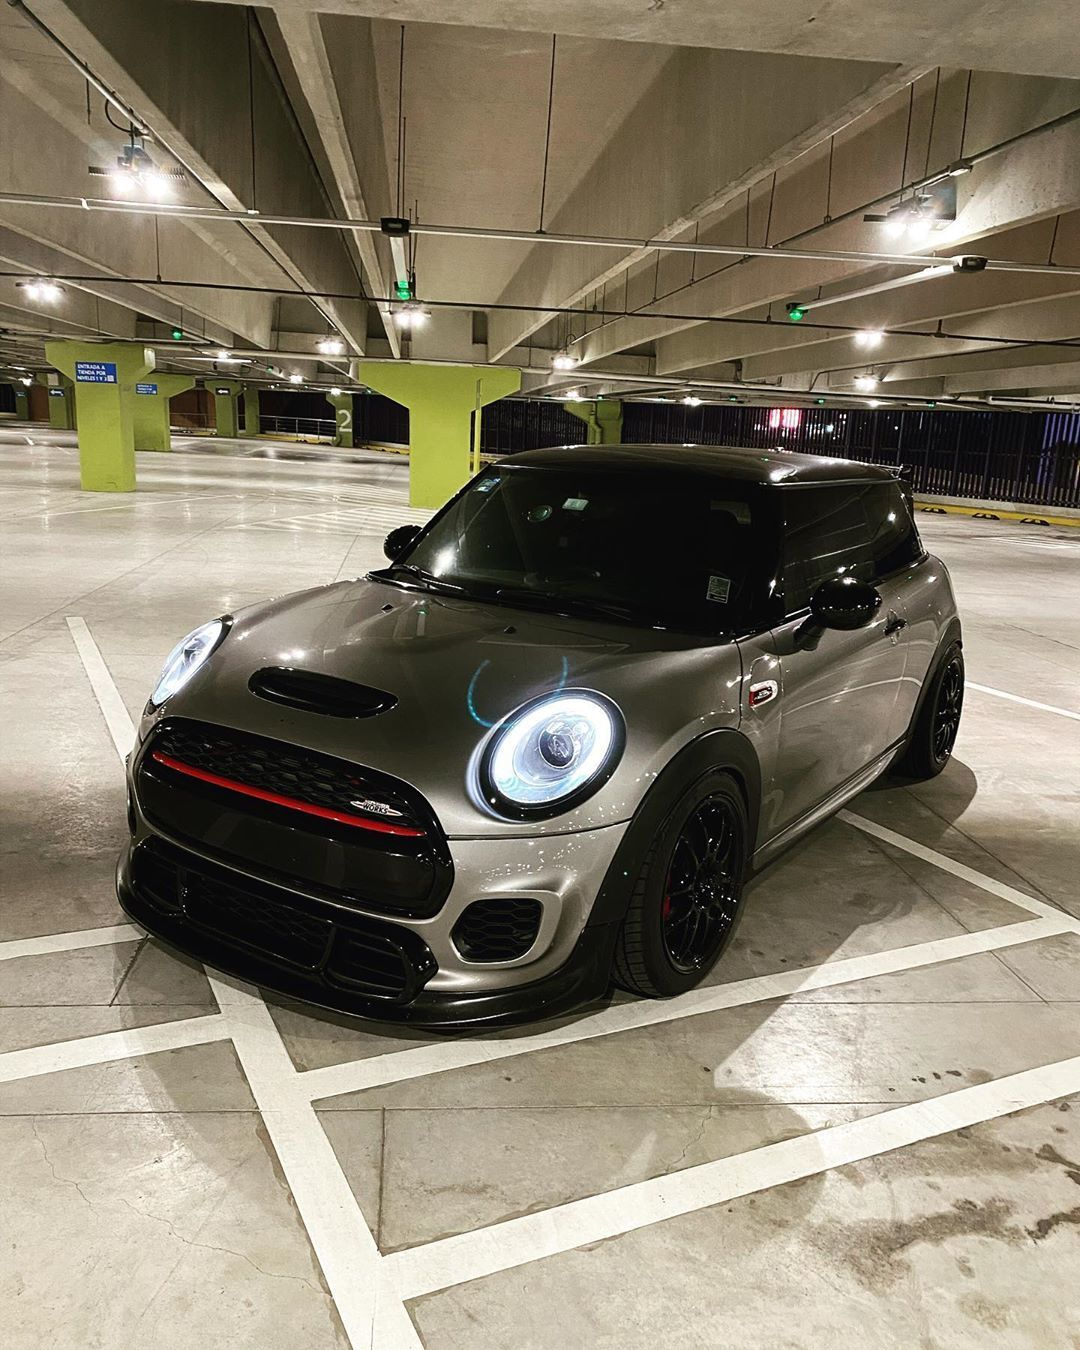 melting pocket rocket on instagram becauseracecar vsco mexico jcw minicooper minicoope in 2020 because race car mini cooper motorsport pinterest